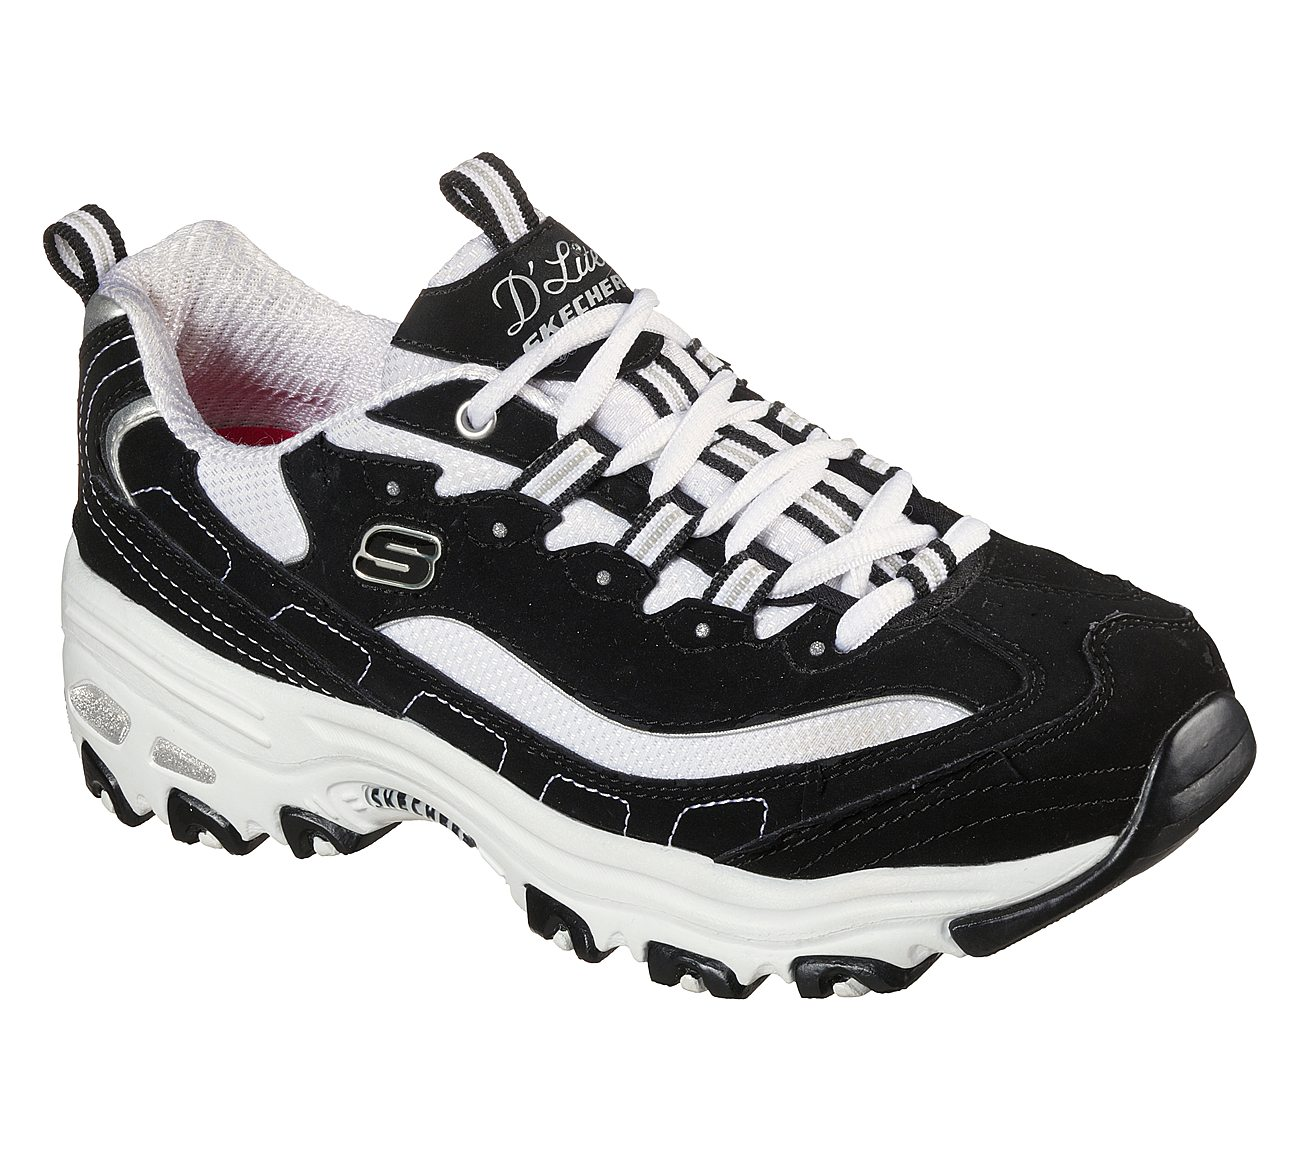 267f1bf3c869 Buy SKECHERS D'Lites - Biggest Fan D'Lites Shoes only $70.00